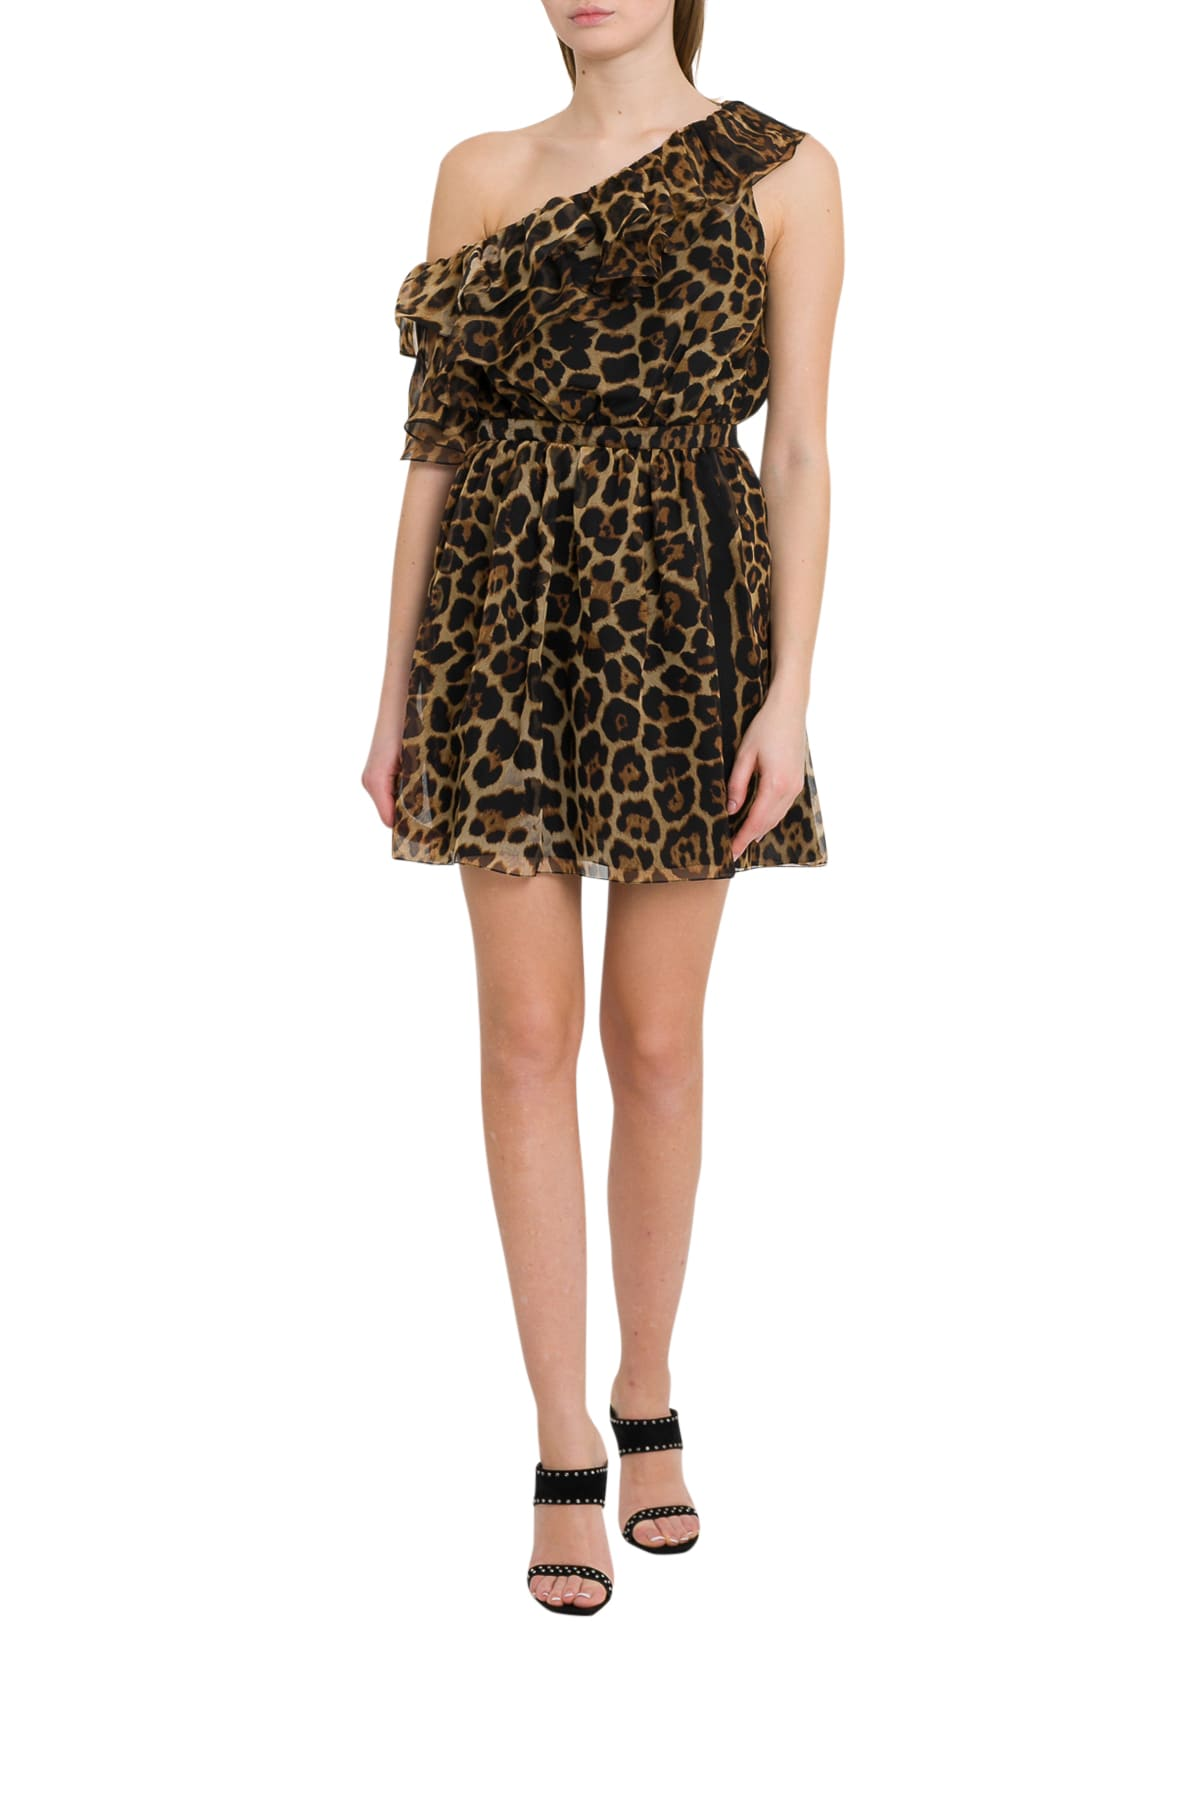 Saint Laurent One-shoulder Dress With Leopard Print